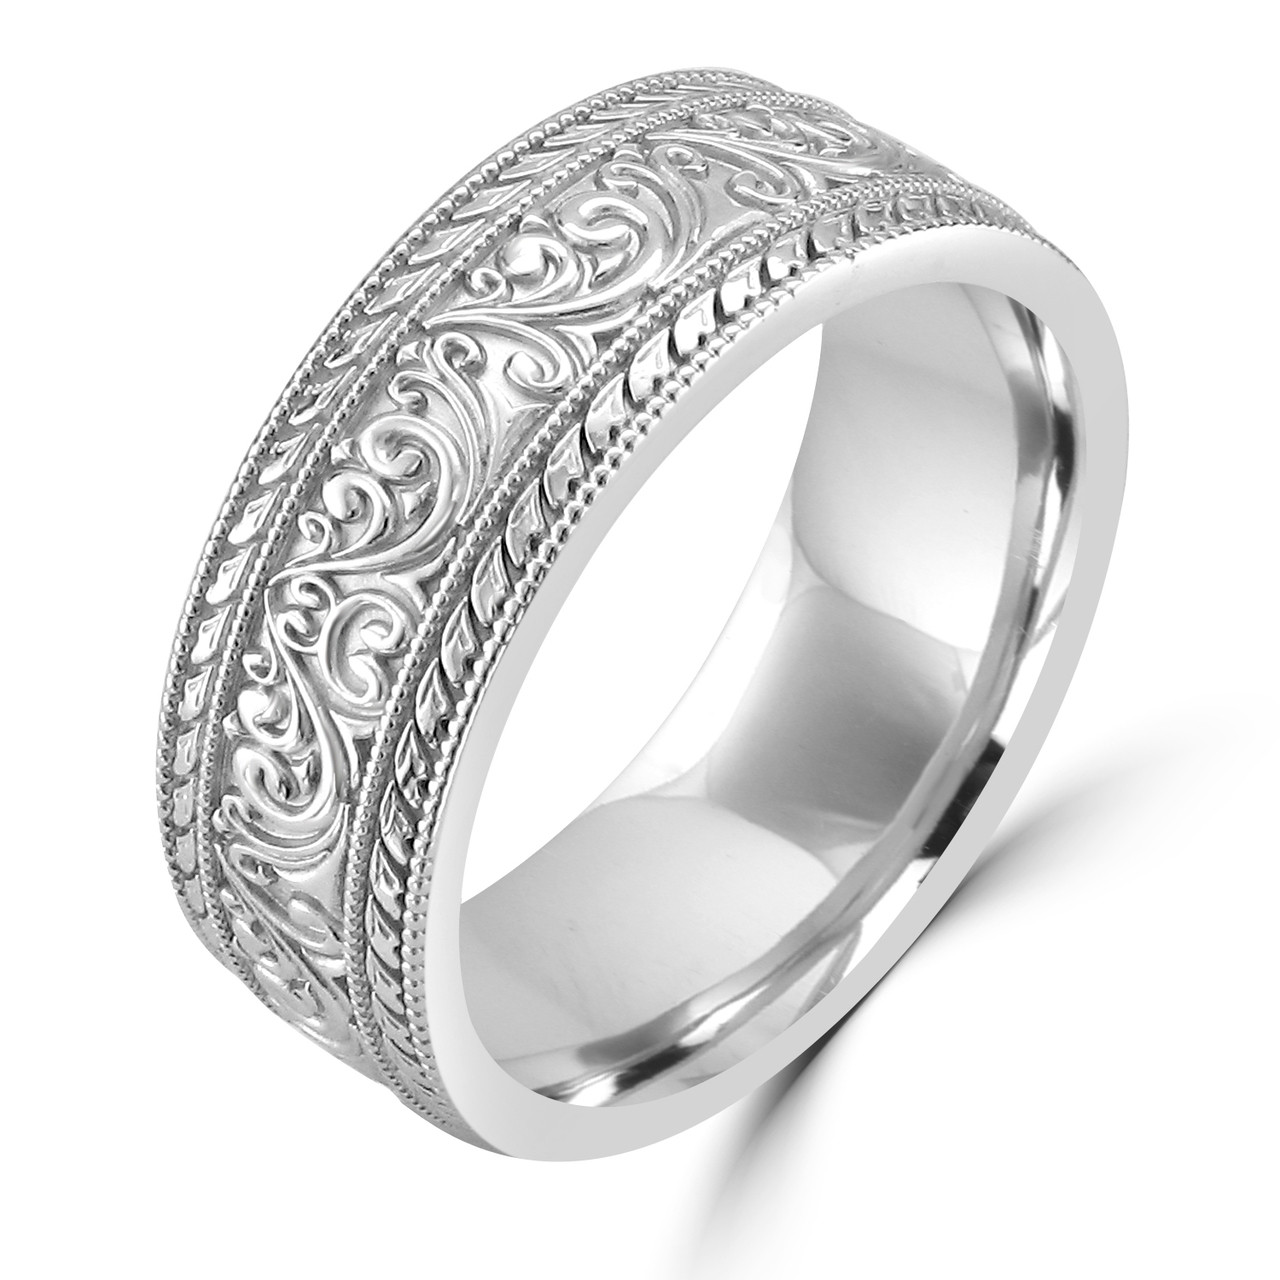 wedding band tungsten carbide exquisite of artcarved with in rings inspirations carved mens bands